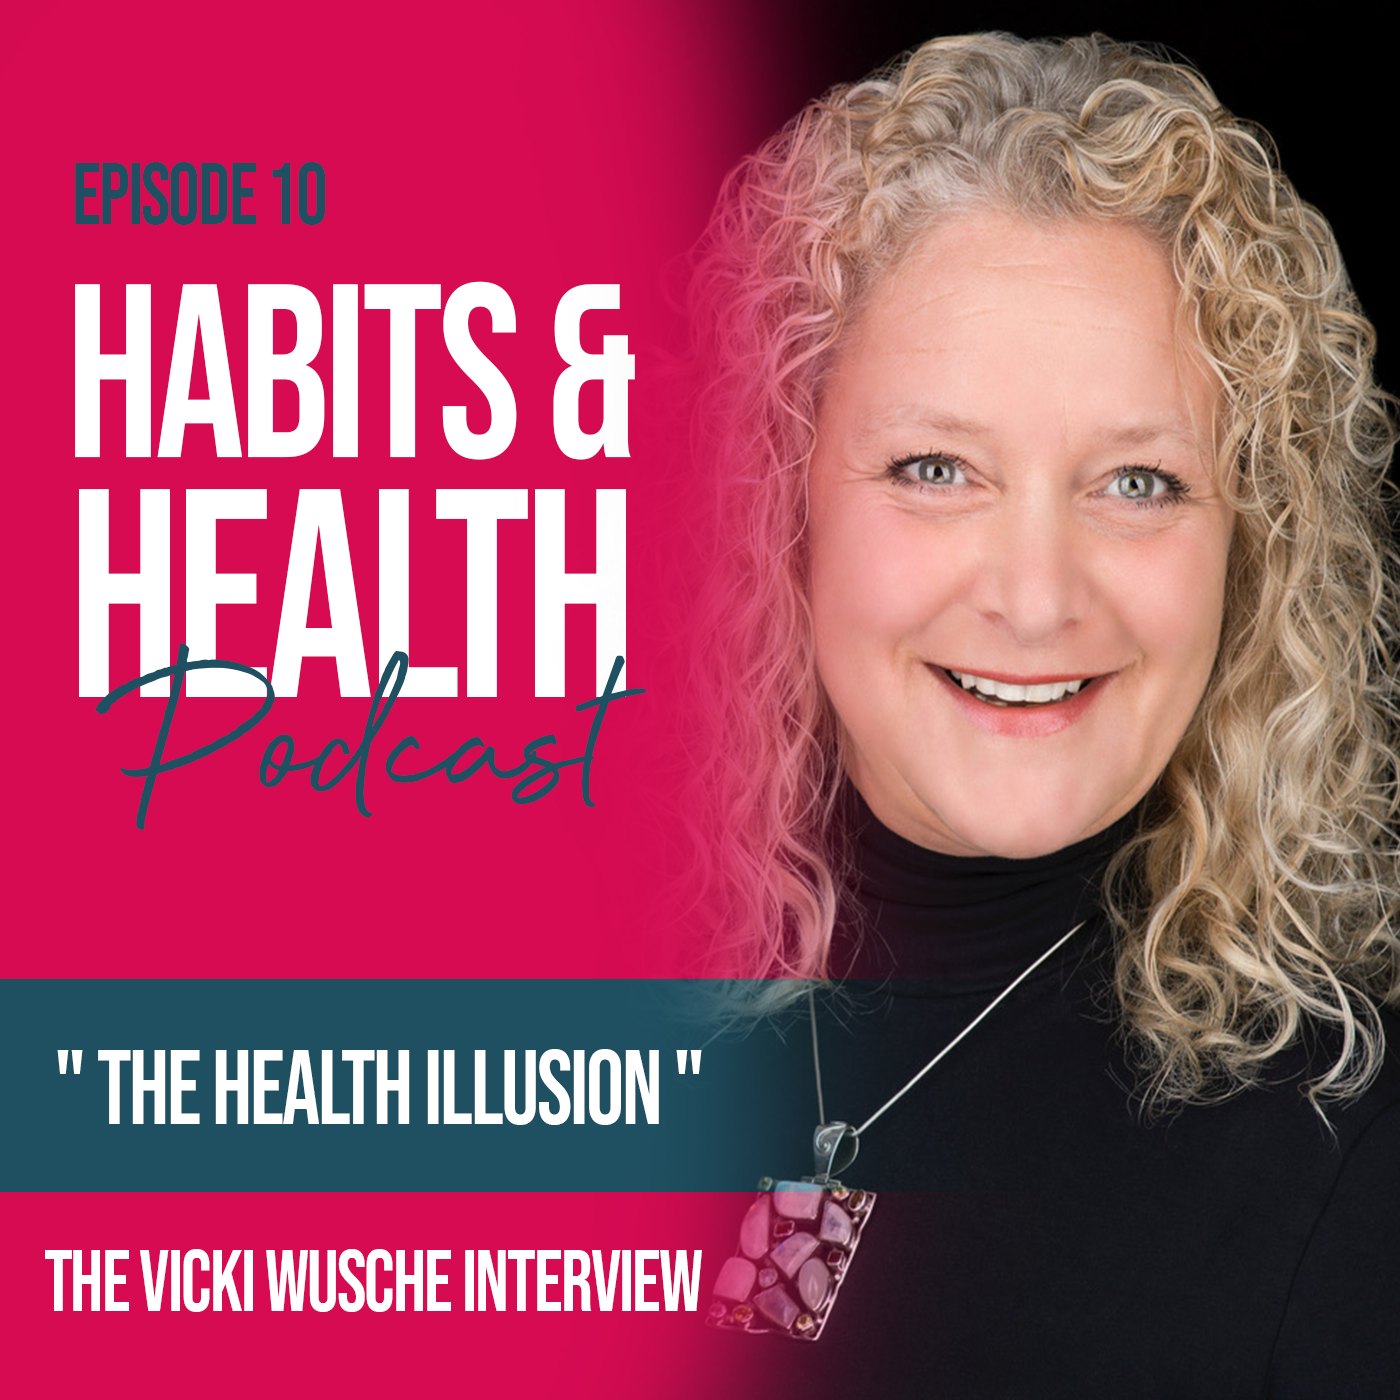 Habits & Health episode 10 - Vicki Wusche - The Health Illusion